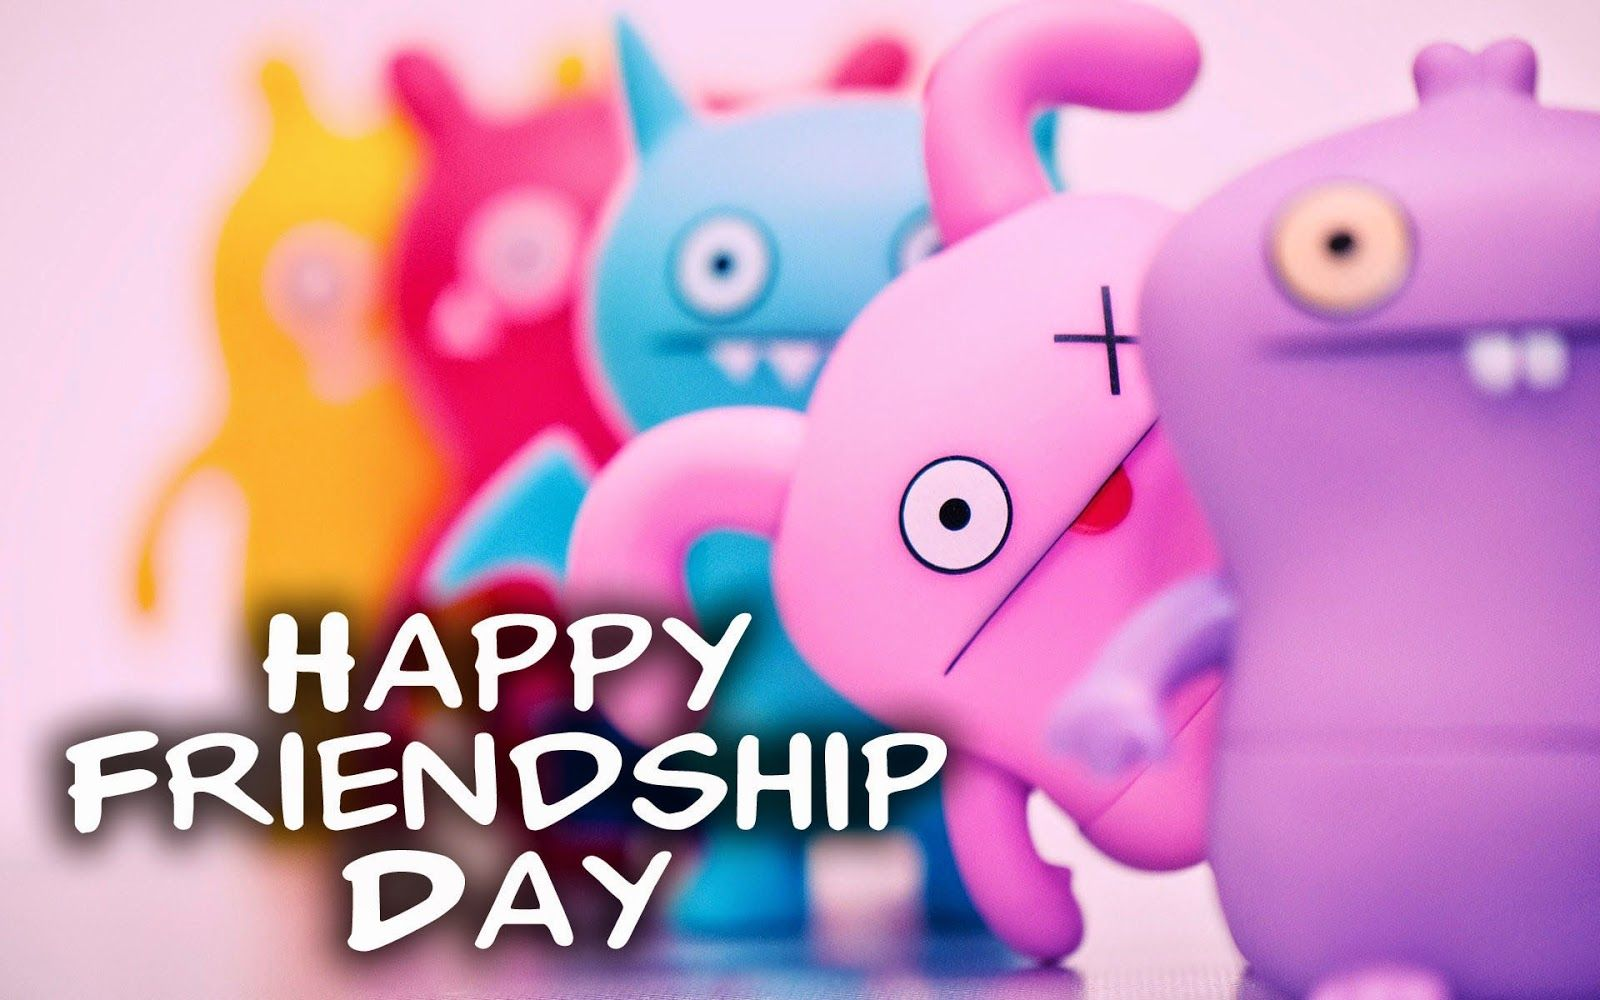 full of friendshipday messages quotes stories happy  full of friendshipday messages quotes stories happy friendship day 2014 happy friendship message quotes and friendship